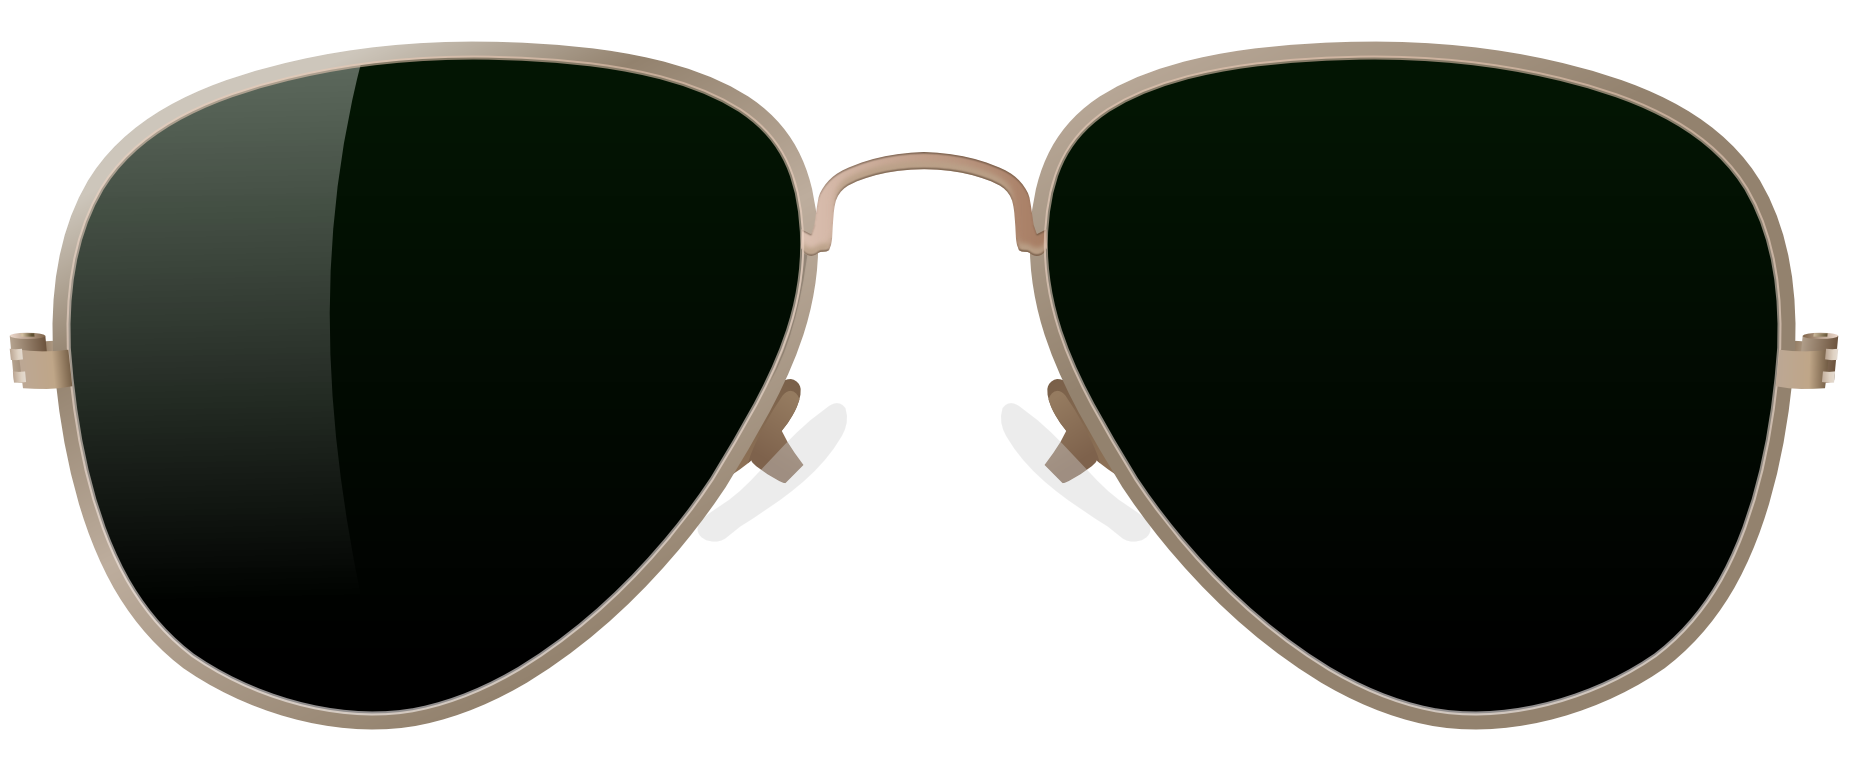 Free sunglasses png images. Aviators transparent black and white library